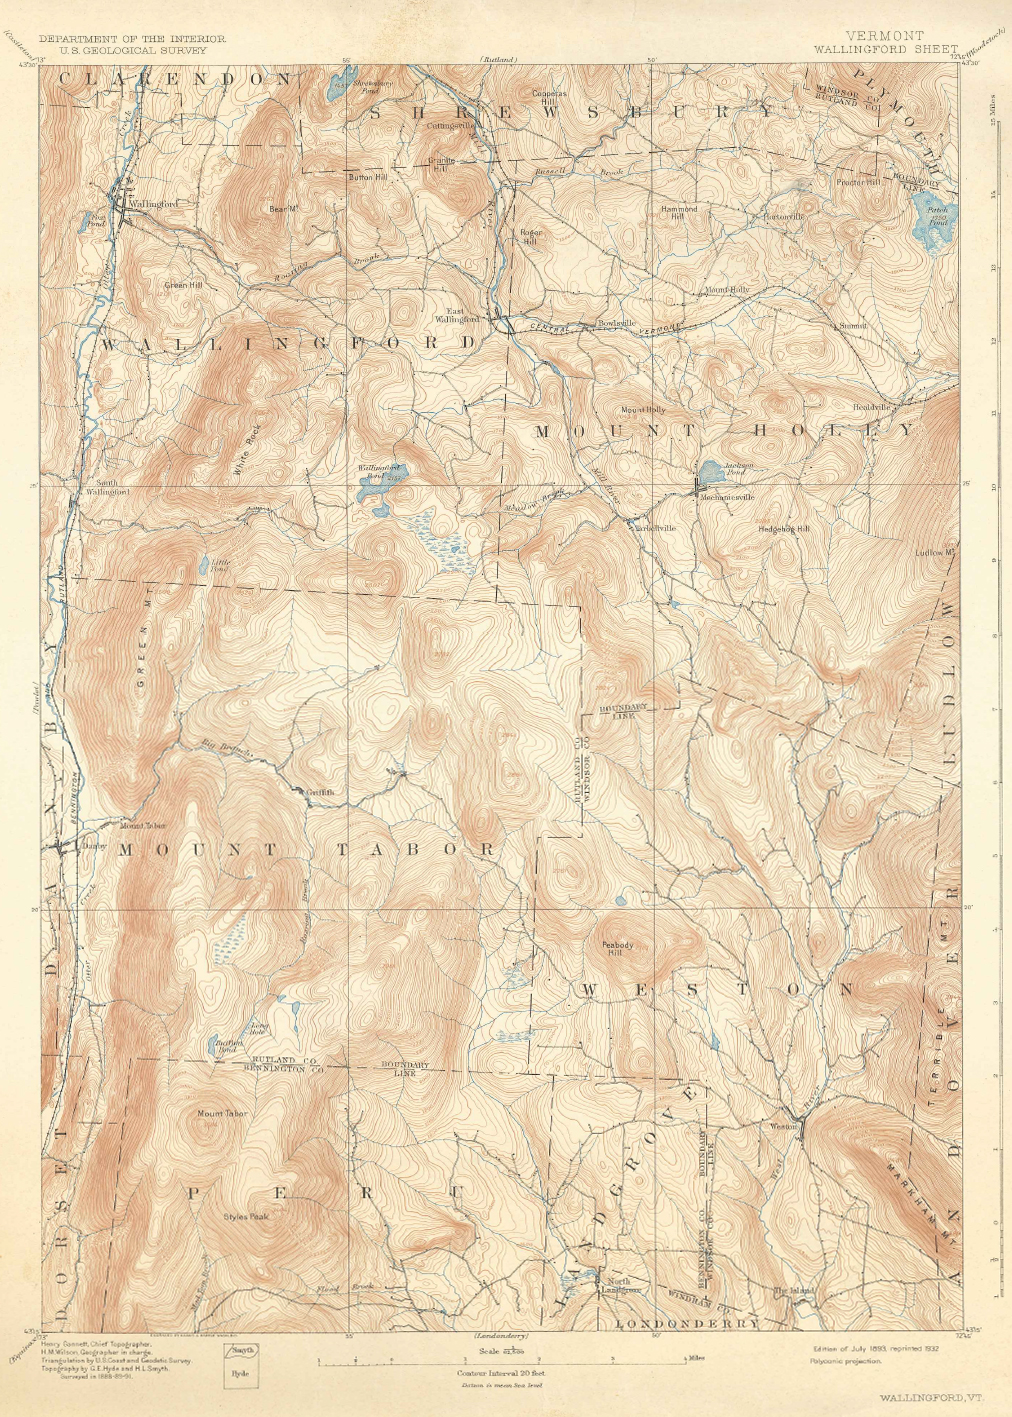 Wallingford, Mount Tabor, Vermont Map